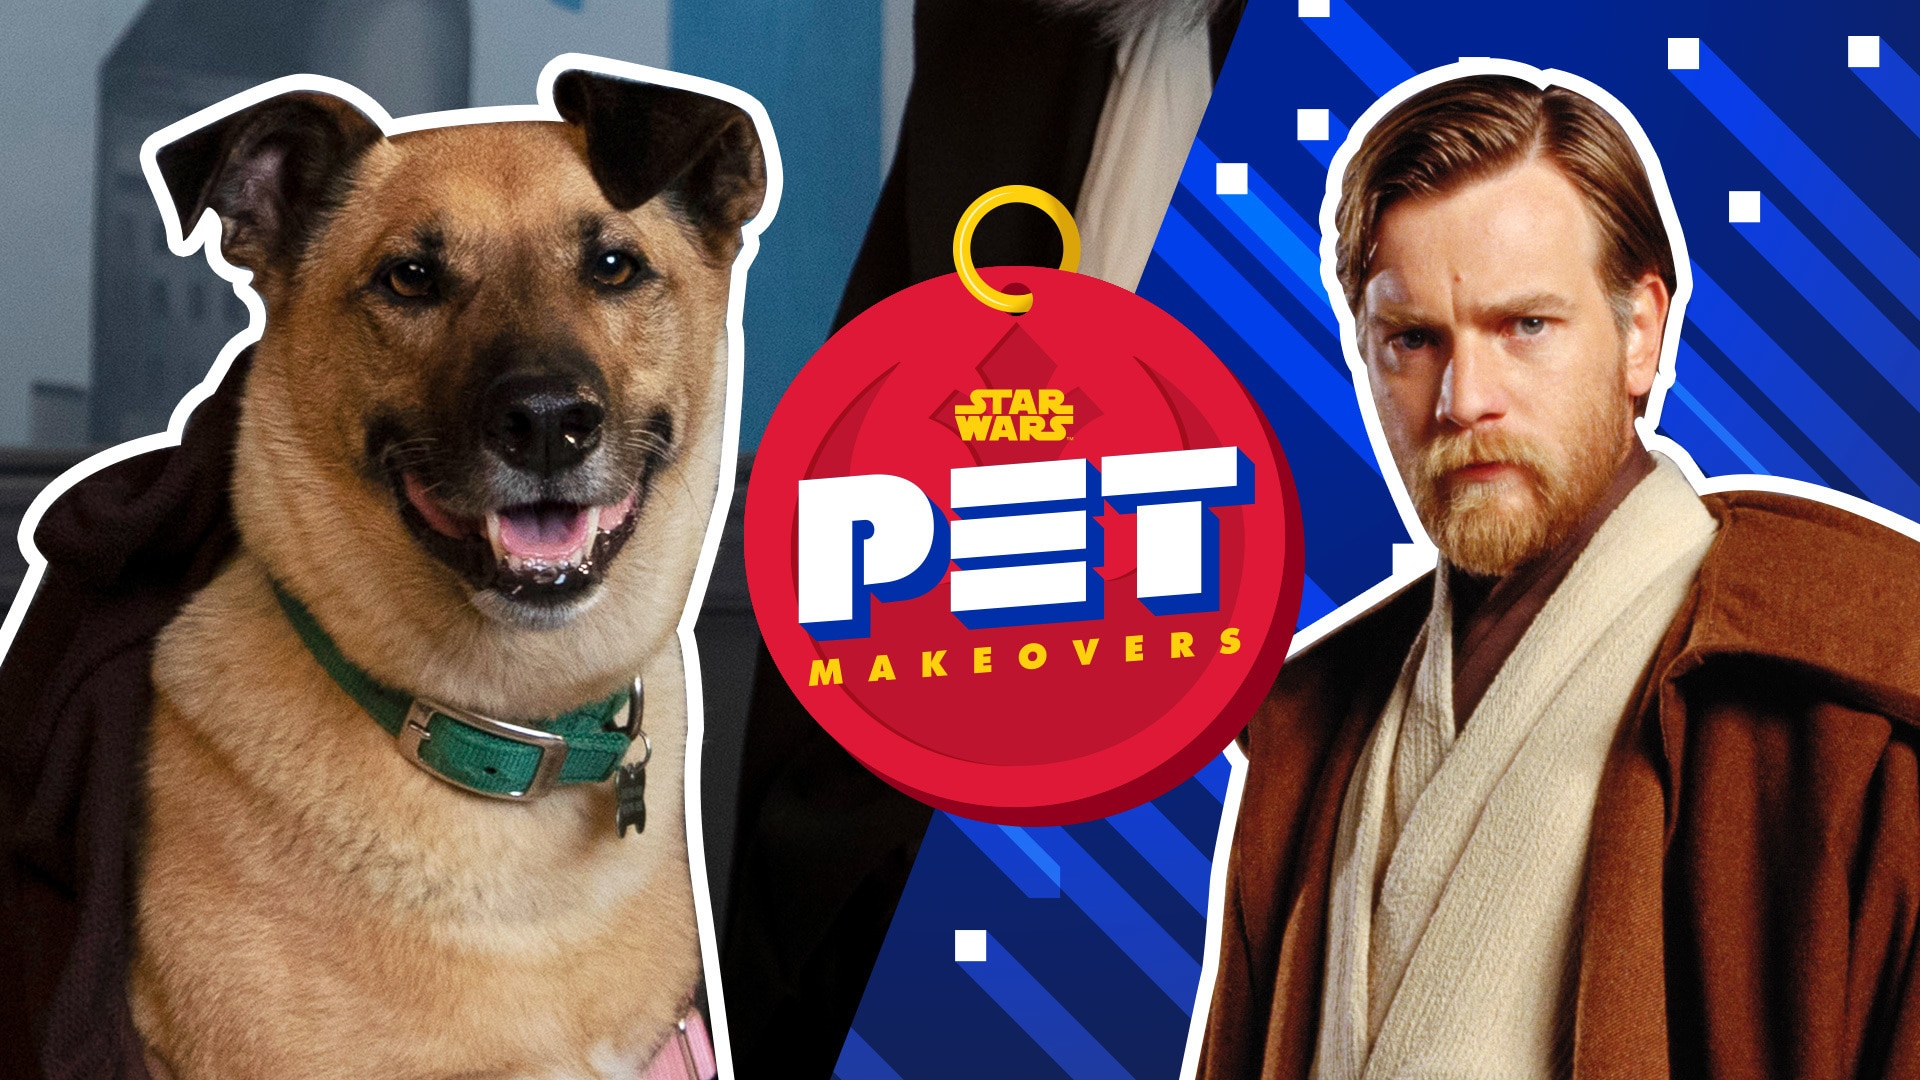 The Jedi Council | Star Wars Pet Makeovers by Oh My Disney